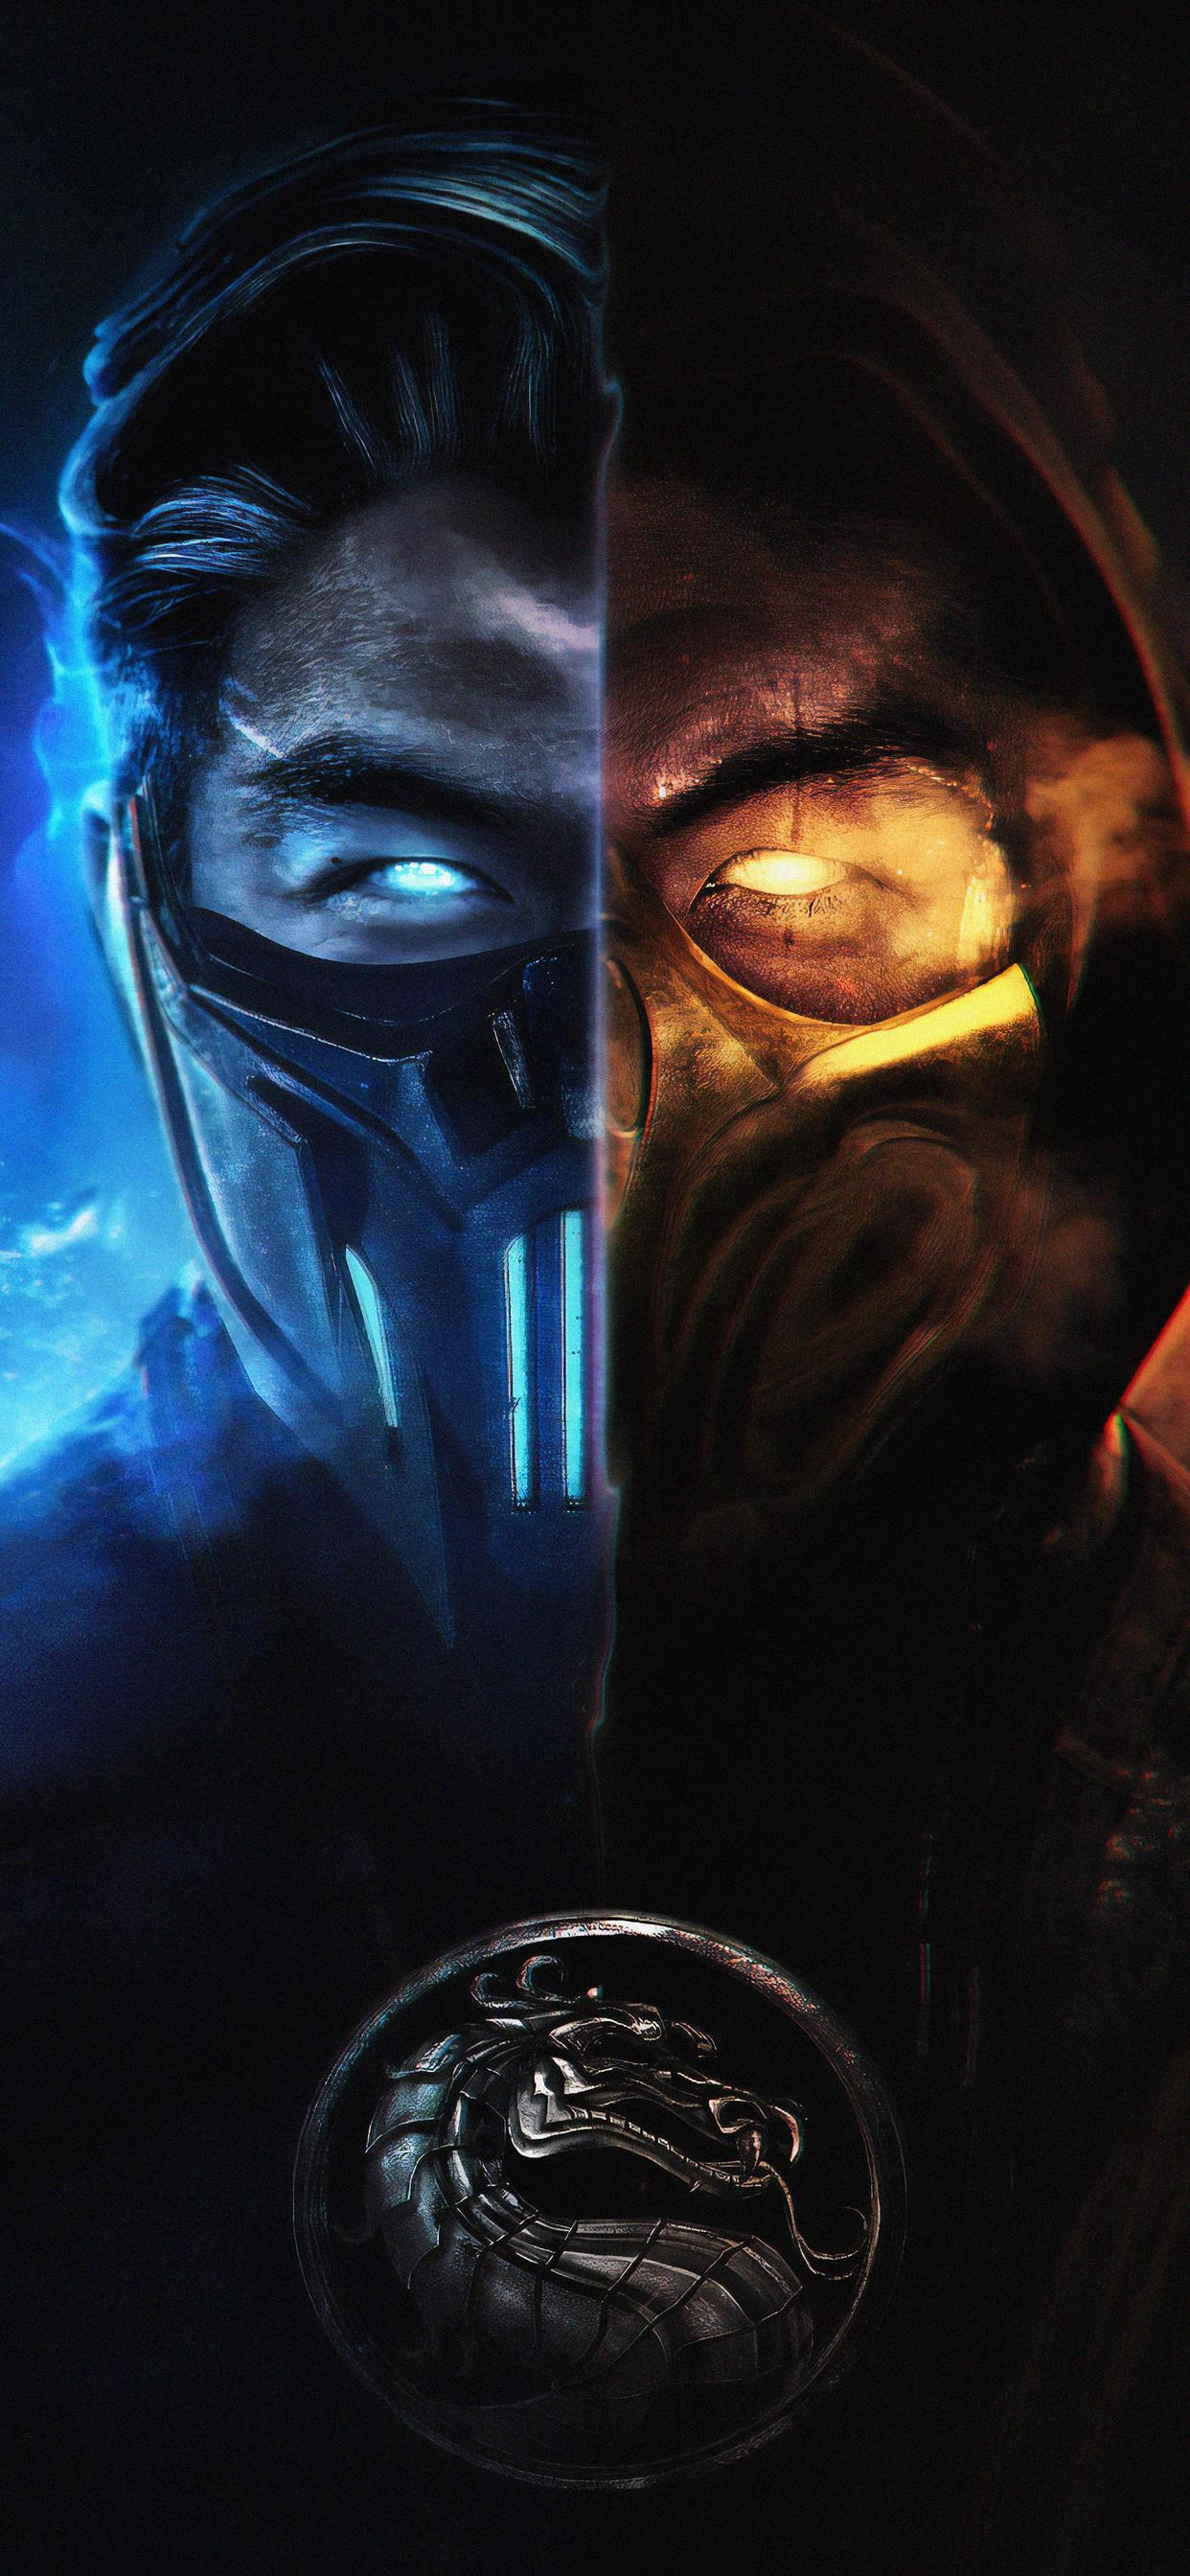 Mortal Kombat Subzero And Scorpion Iphone X Wallpapers Free Download